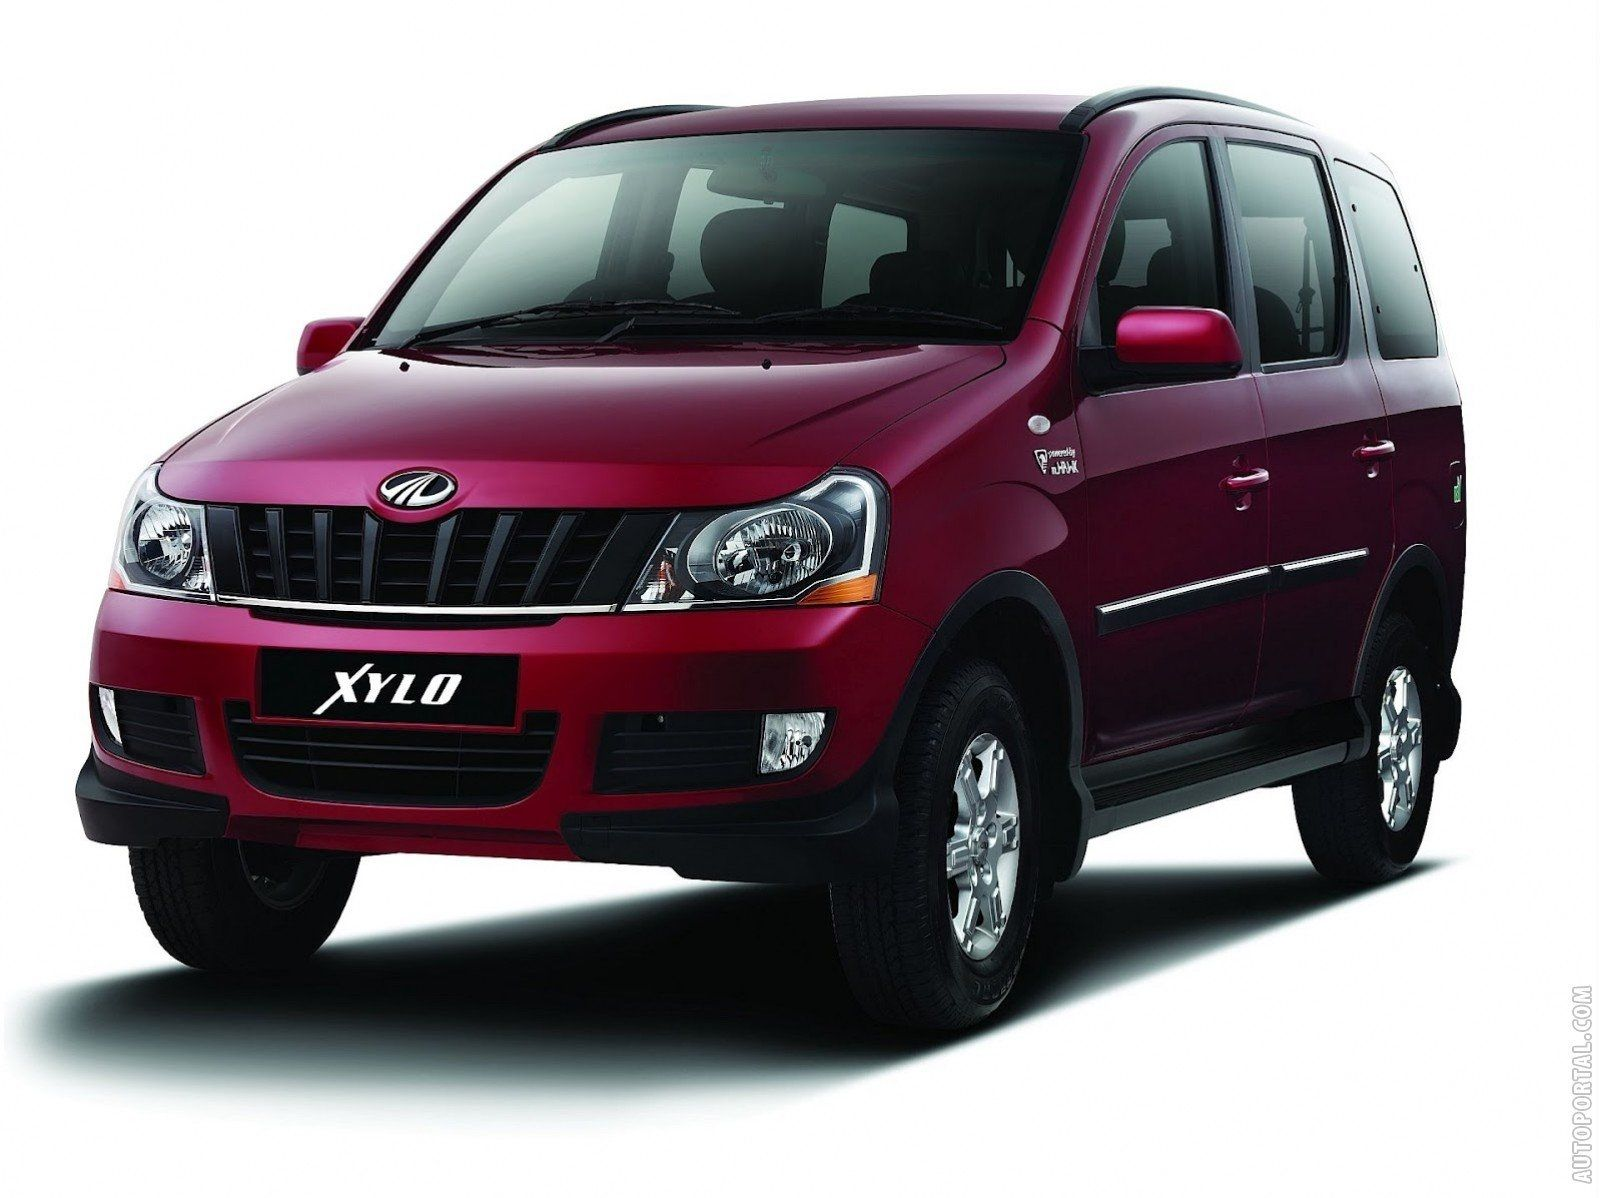 Mahindra Xylo With Images Car Rental Car Vehicles